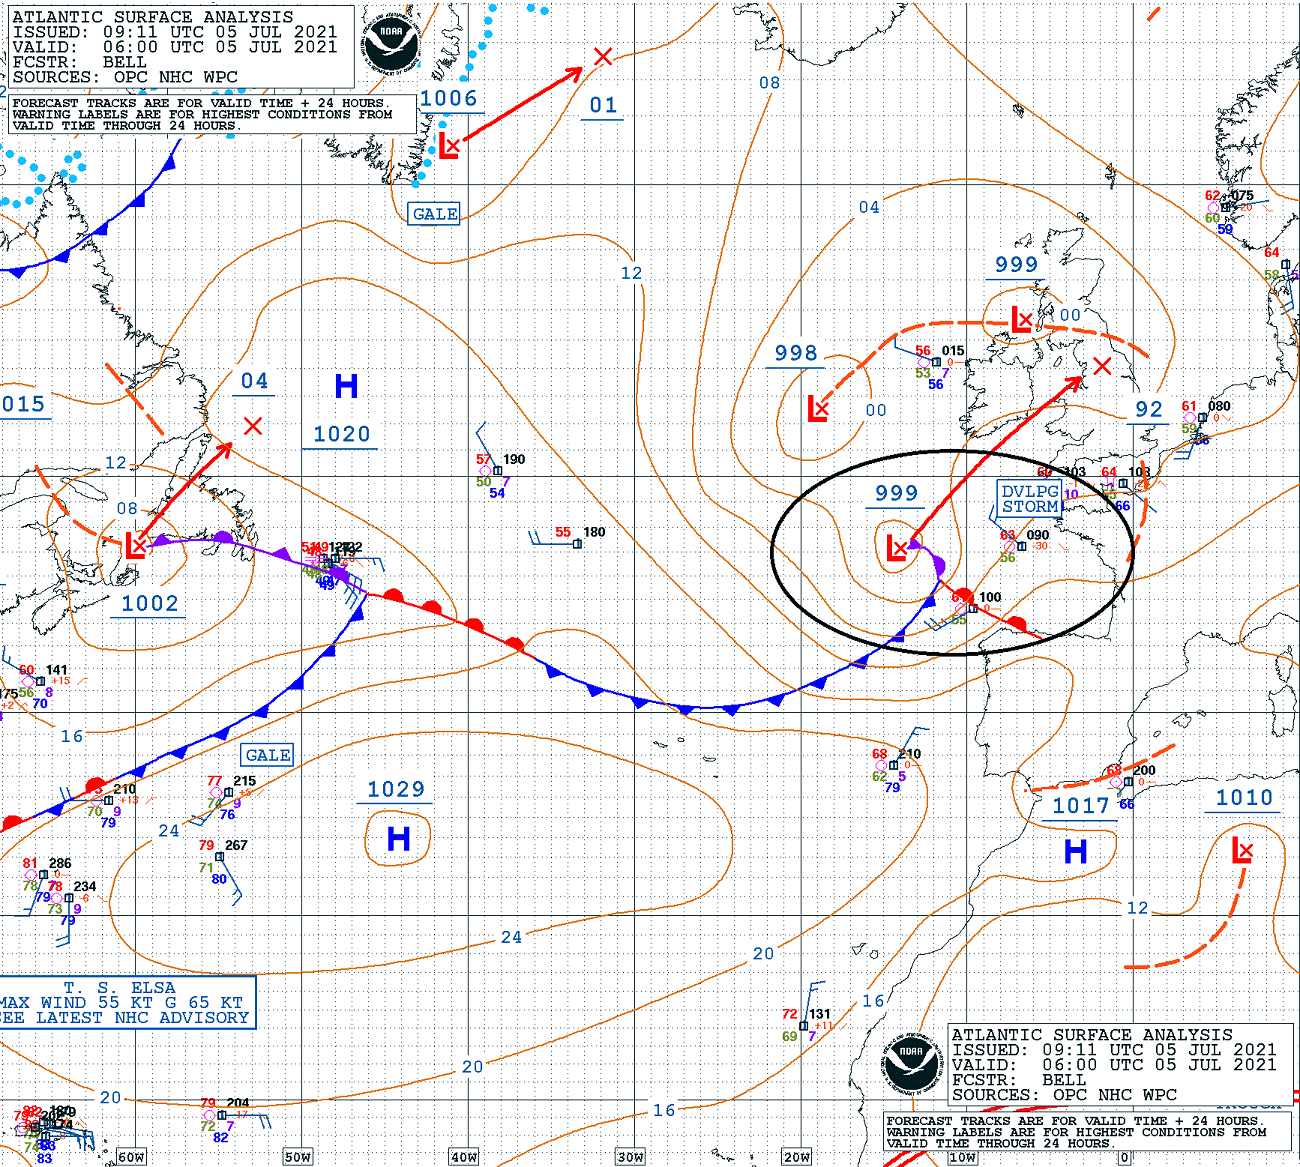 north-atlantic-extratropical-storm-england-english-channel-france-surface-chart